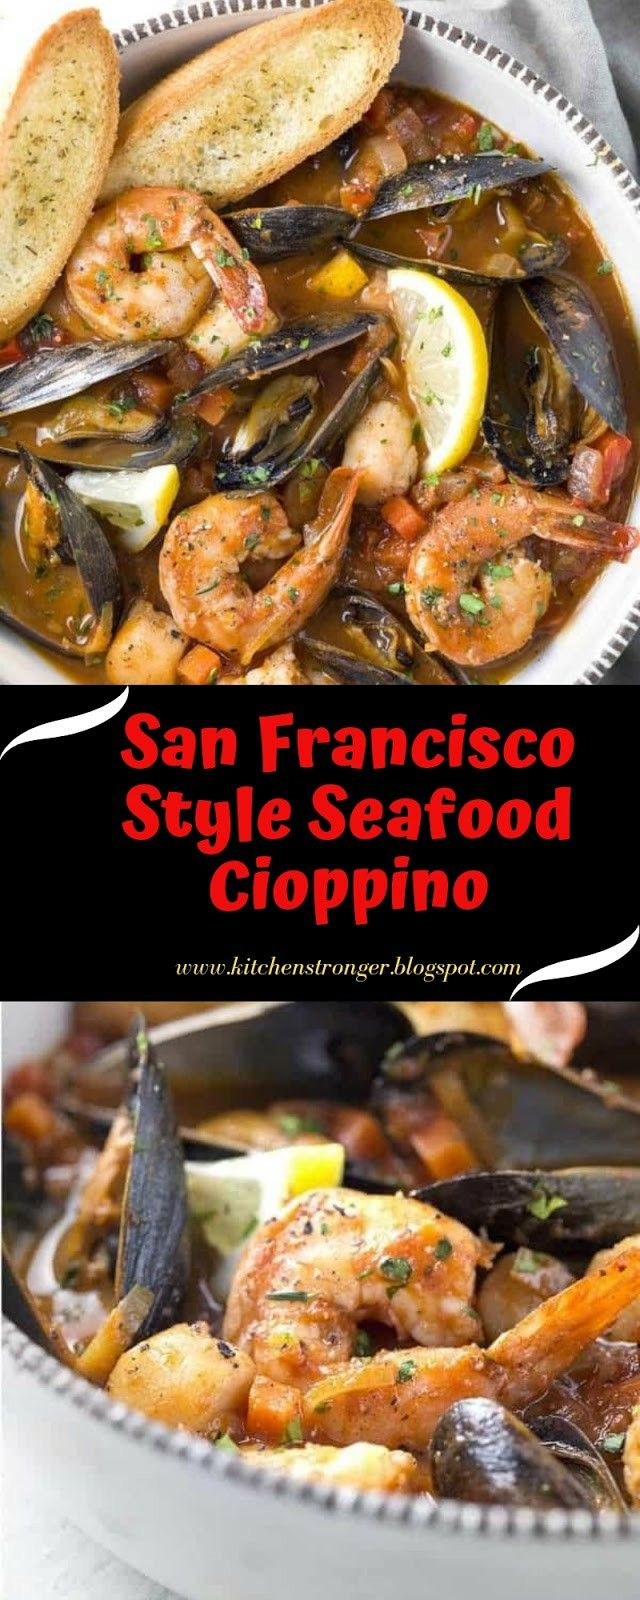 San Francisco Style Seafood Cioppino In 2020 Seafood Recipes Seafood Cioppino Cooking Seafood